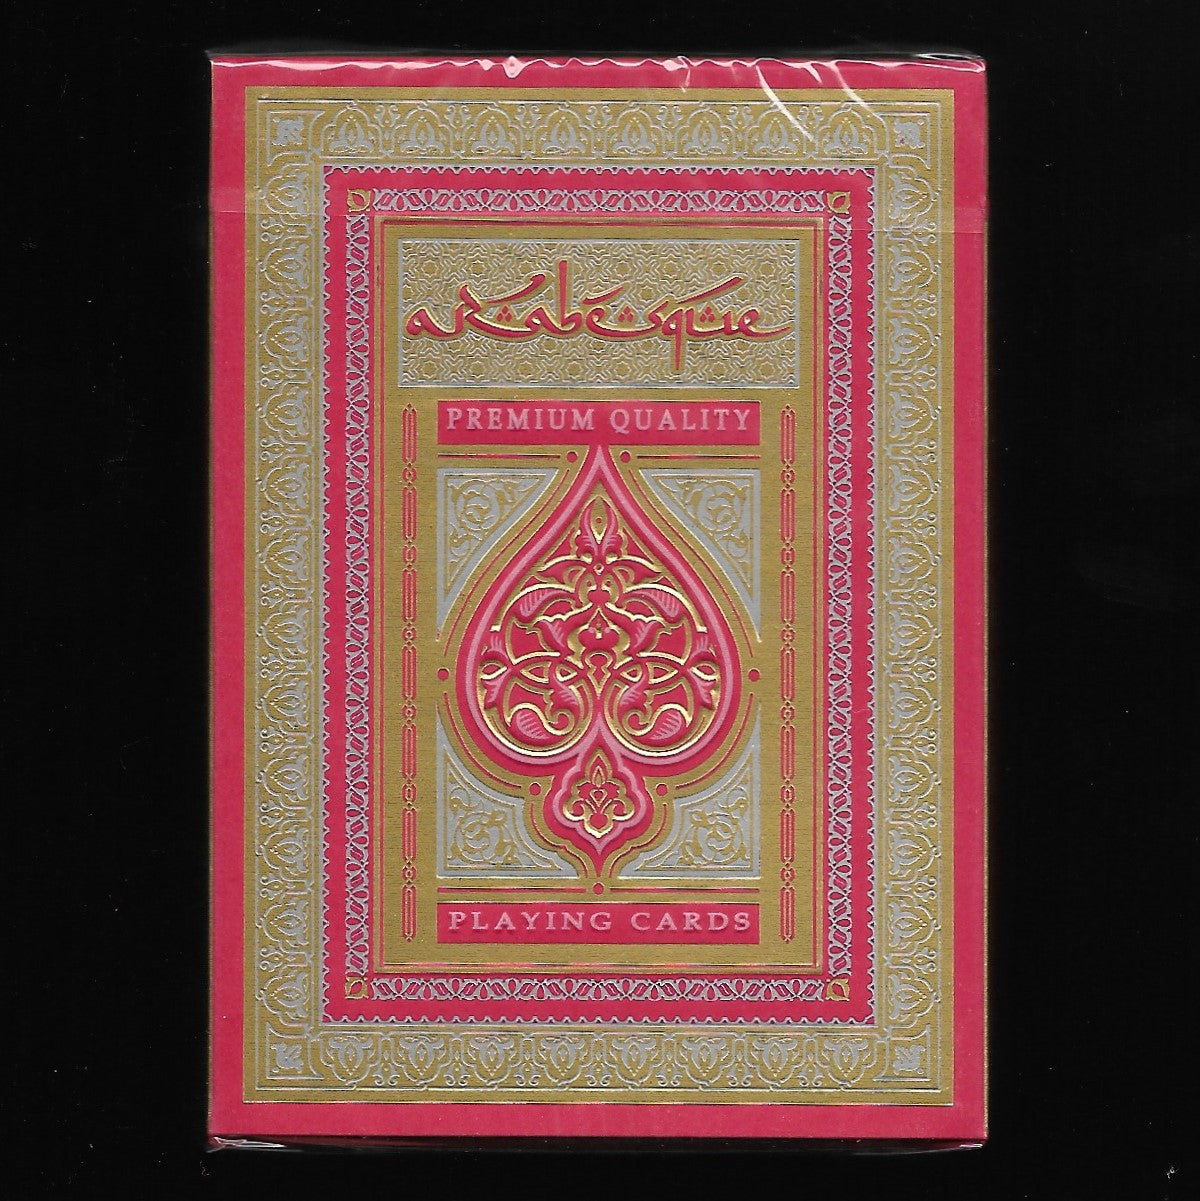 ARABESQUE - Player's Edition (Red)